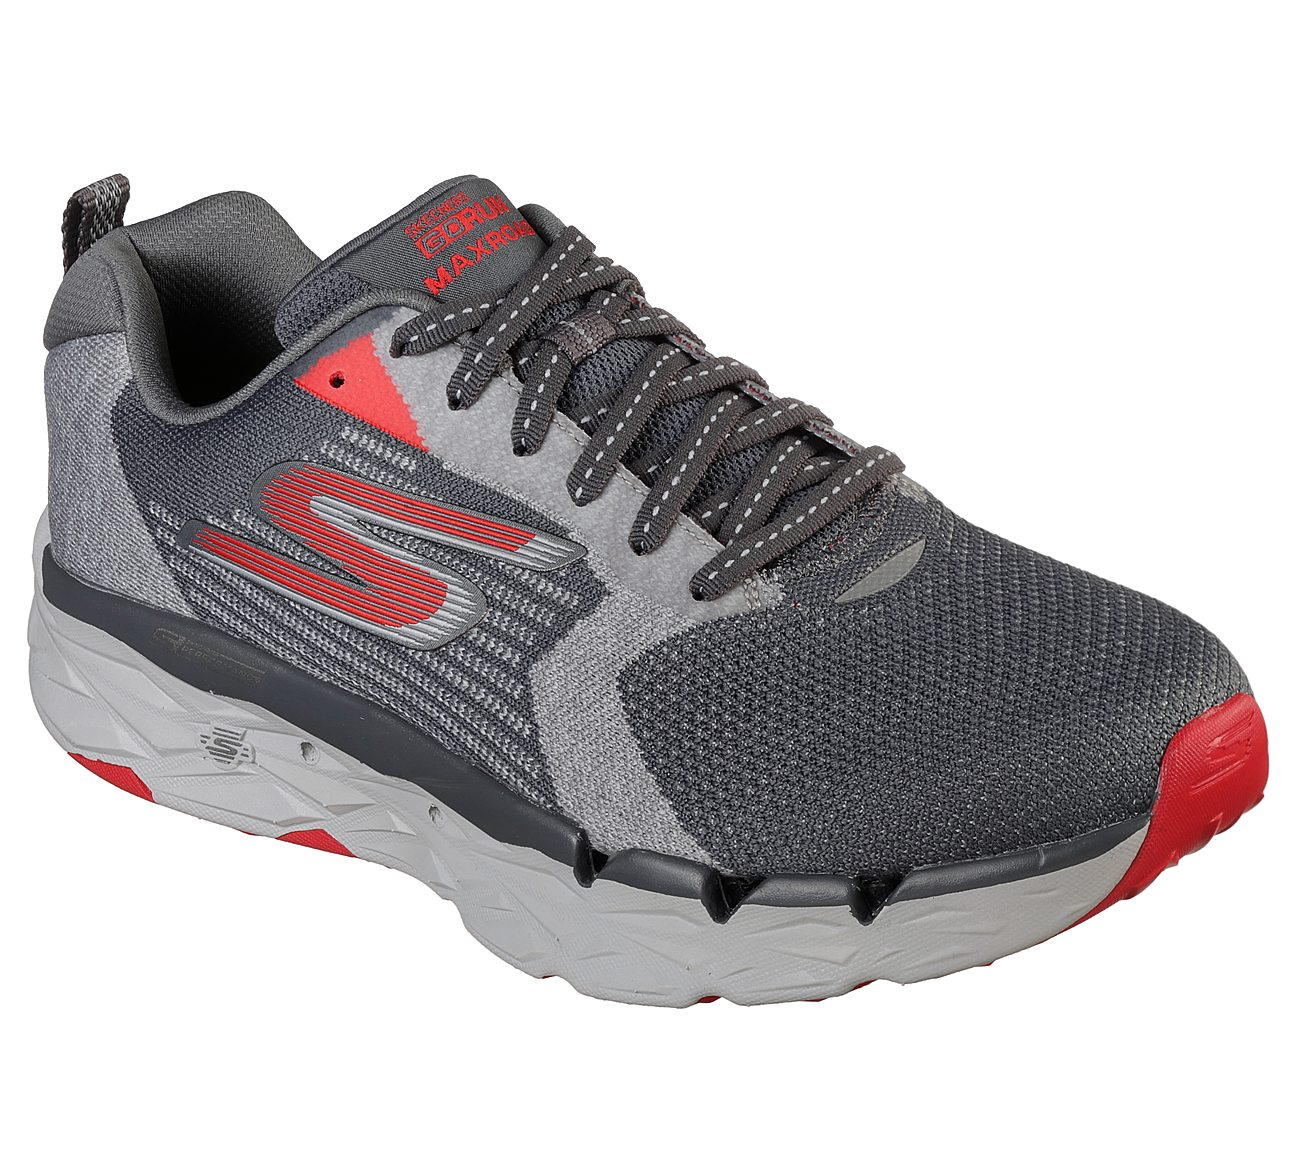 skechers performance running shoes reviews